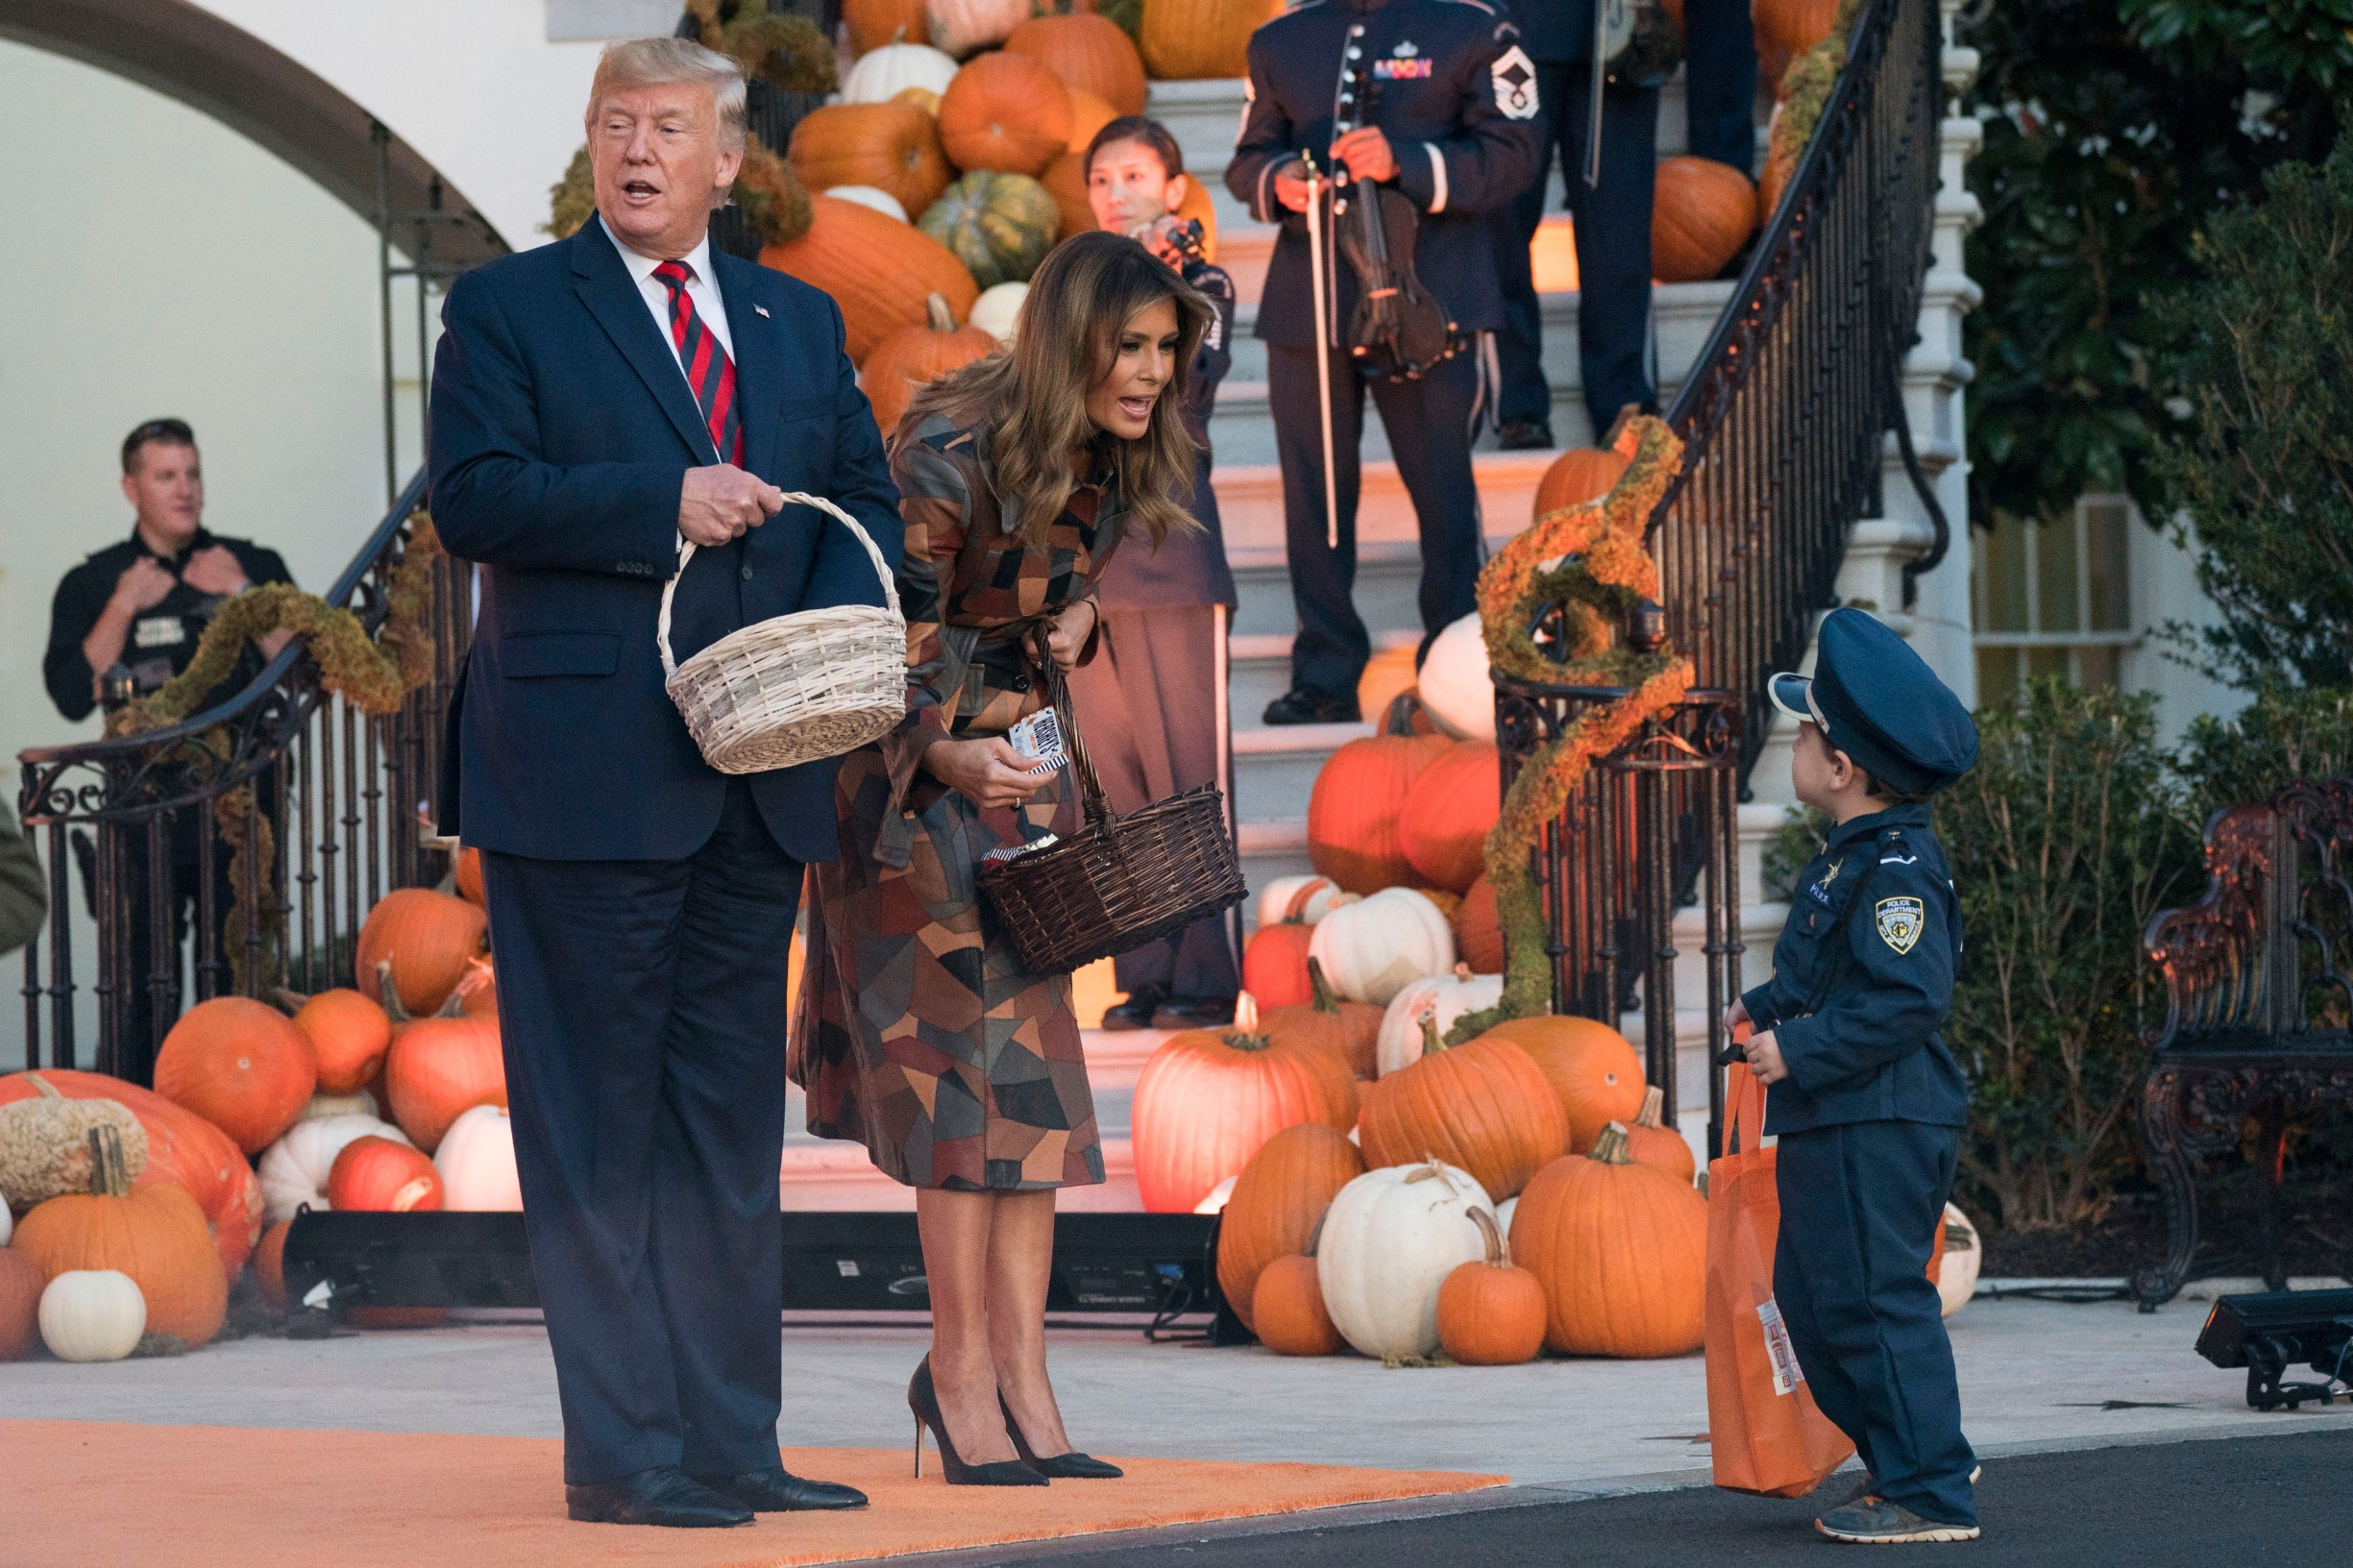 President Donald Trump and first lady Melania Trump participate in a Halloween celebration on the South Portico of the White House in Washington, DC on Monday, October 28, 2019., Image: 479495406, License: Rights-managed, Restrictions: *** World Rights ***, Model Release: no, Credit line: Sipa USA / ddp USA / Profimedia